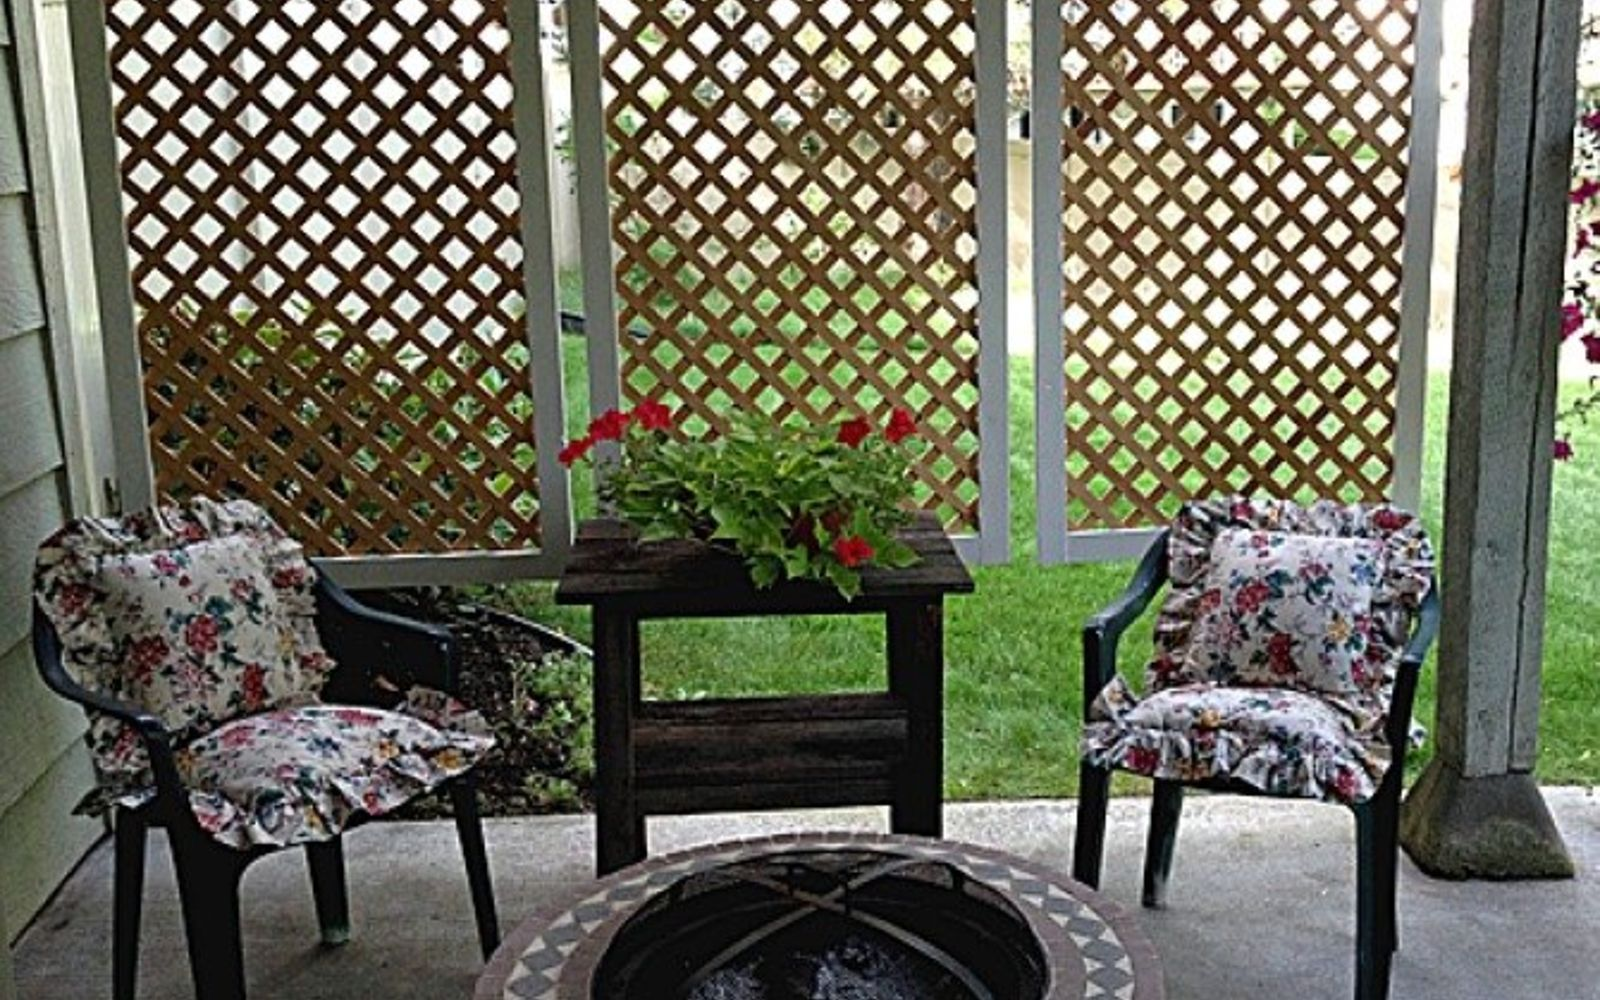 s 17 amazing garden features we ve been saving for summer, gardening, outdoor living, ponds water features, This perfect patio privacy screen